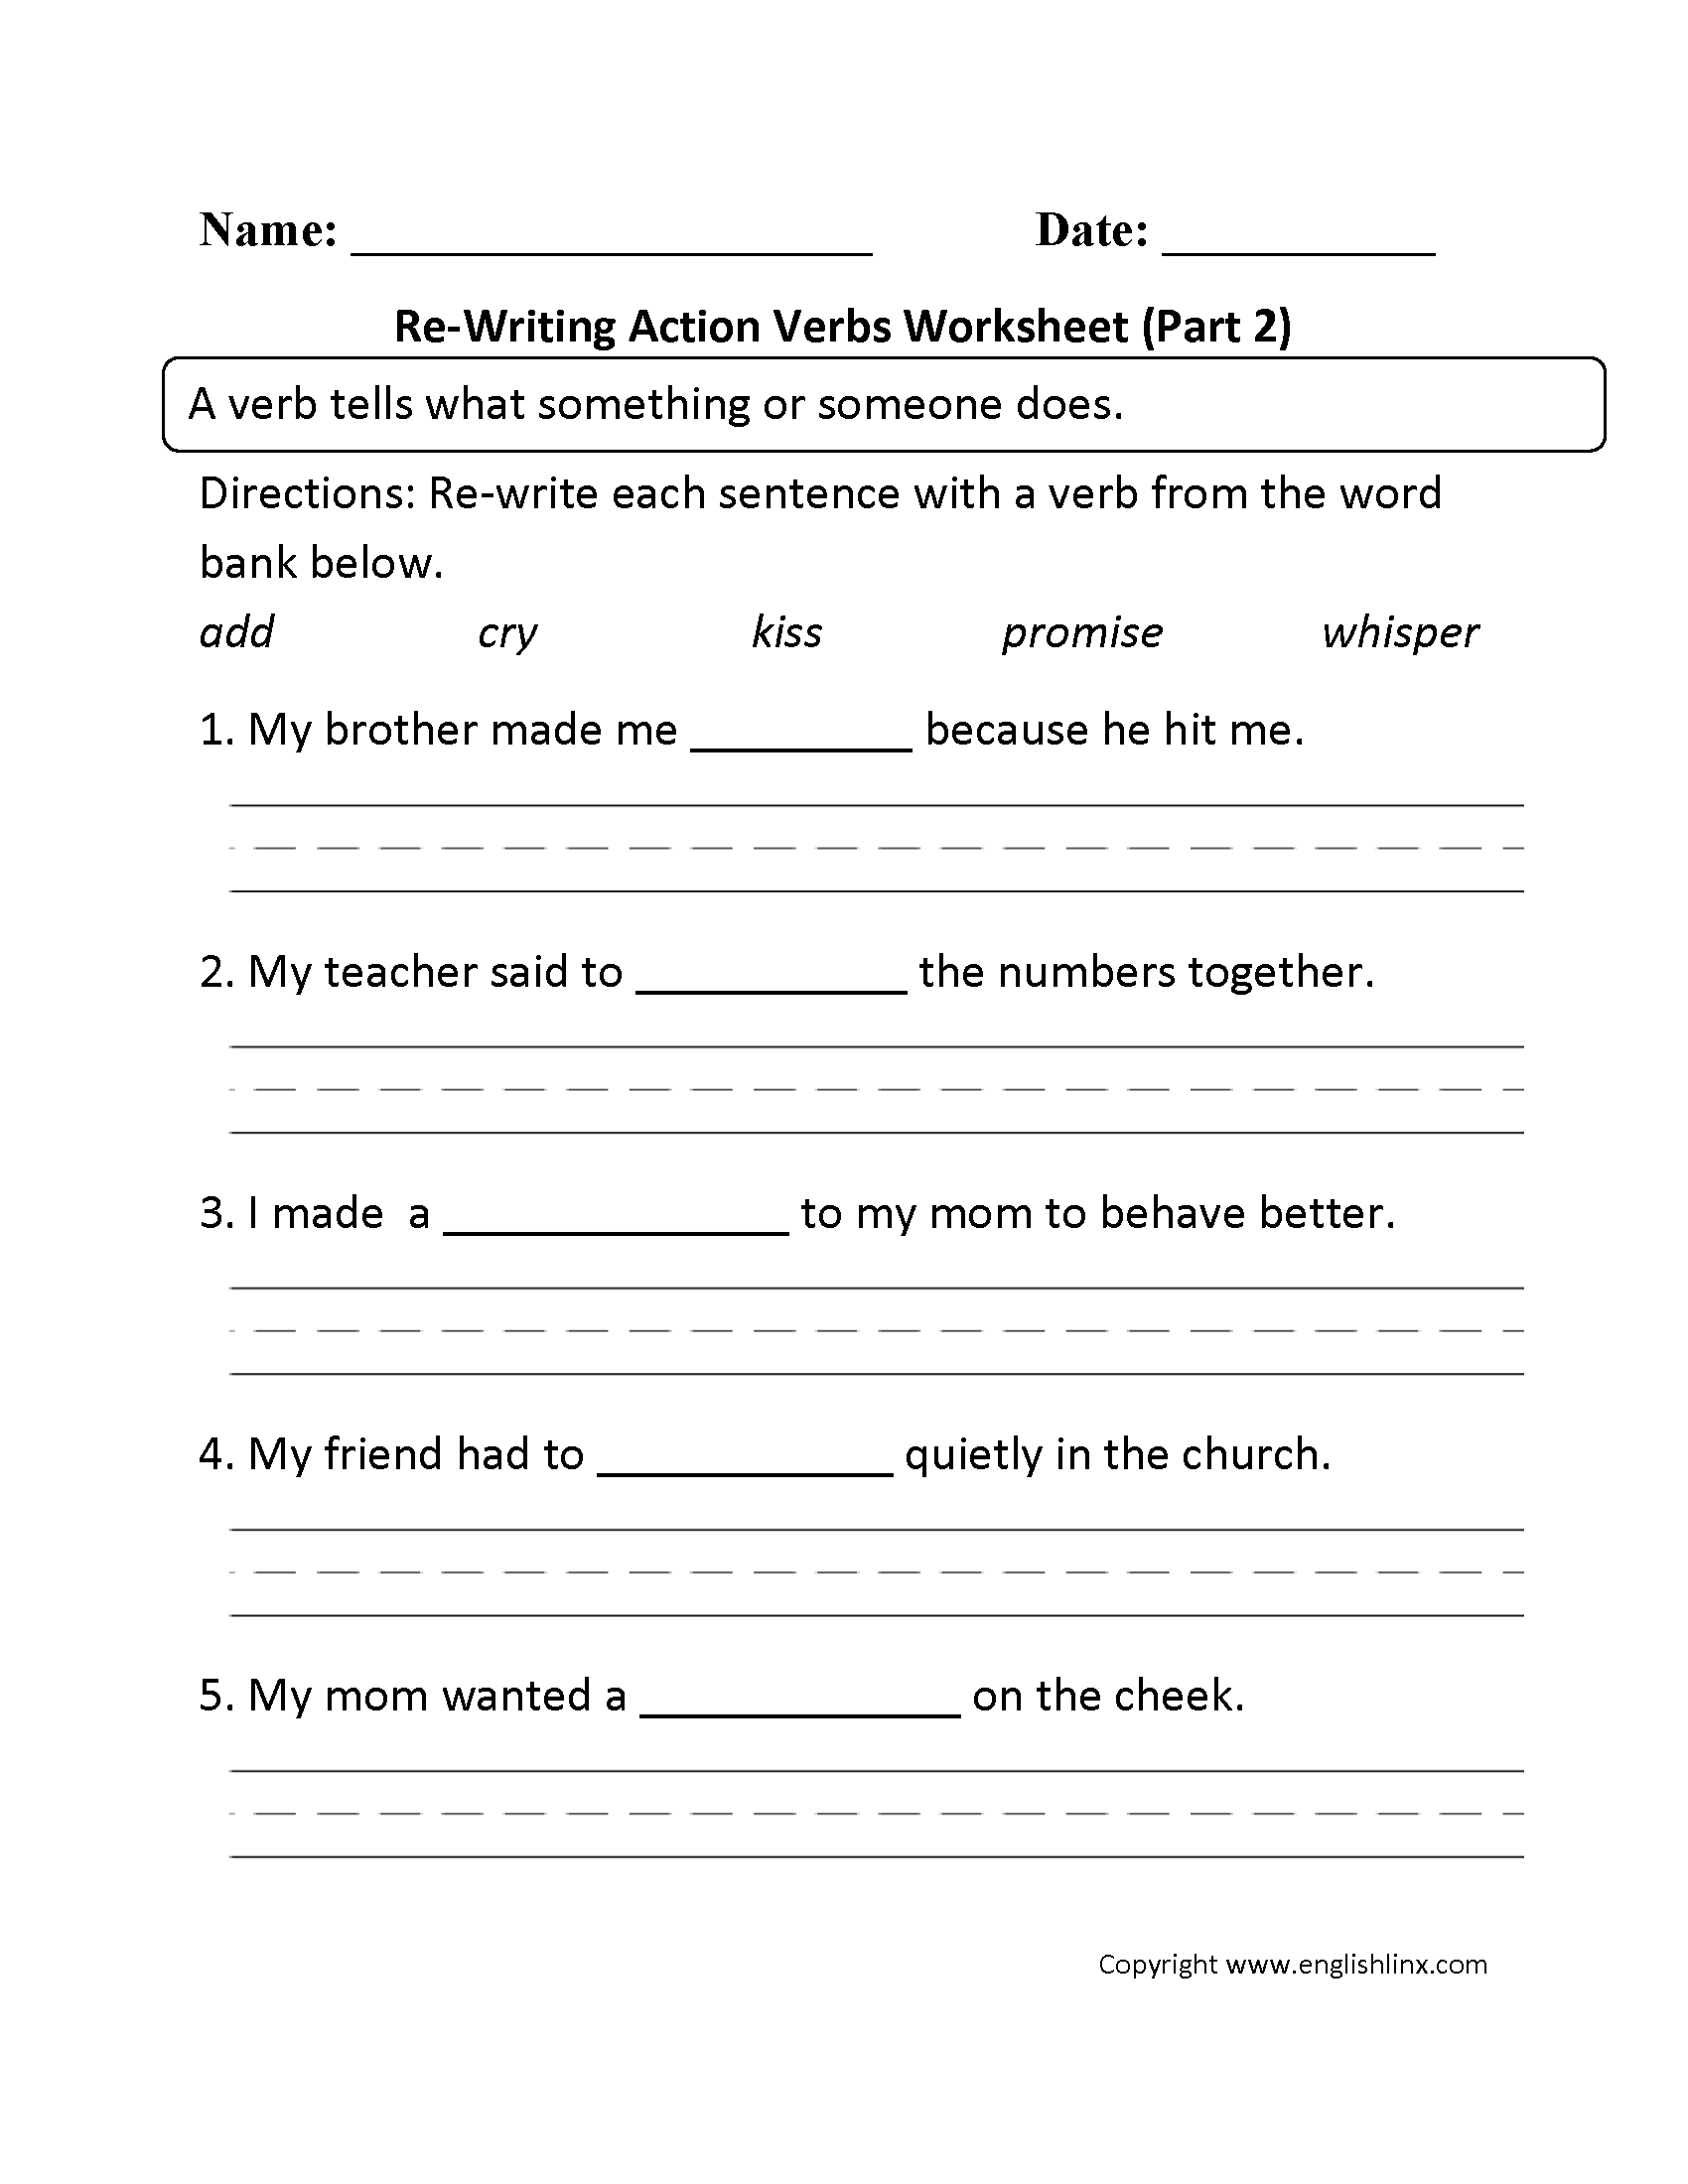 Verbs Worksheets | Action Verbs Worksheets